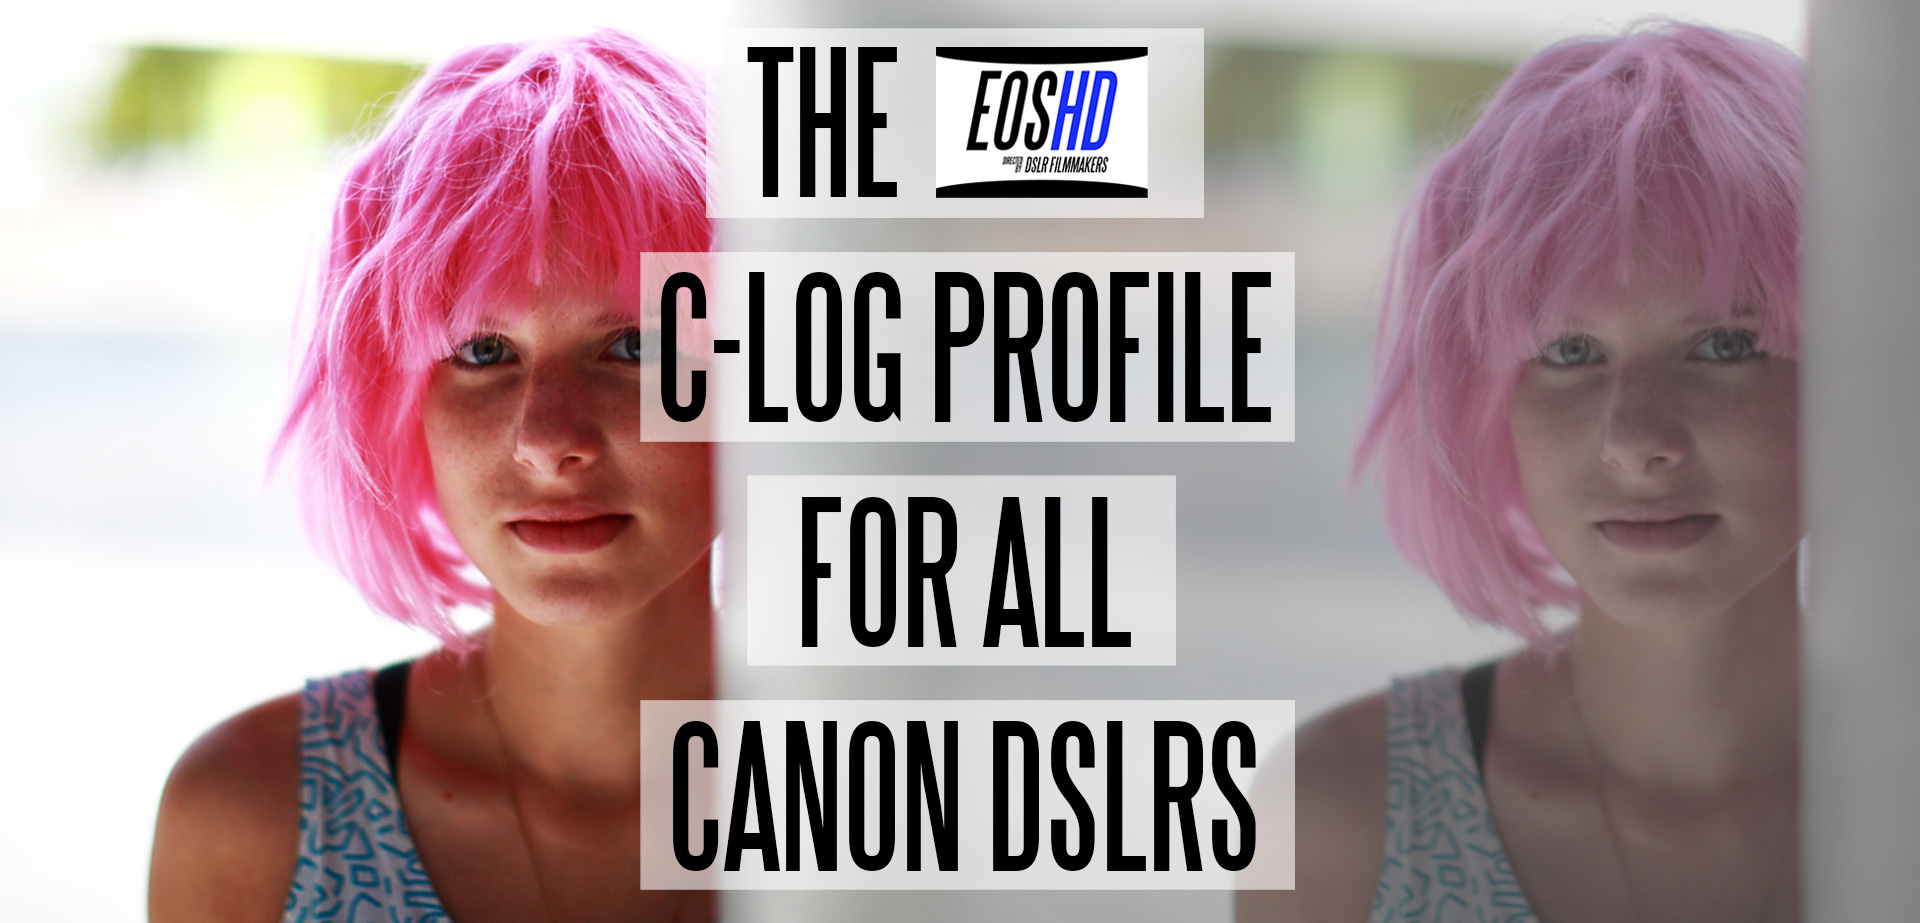 Now available - EOSHD Picture Profiles brings C-LOG to all